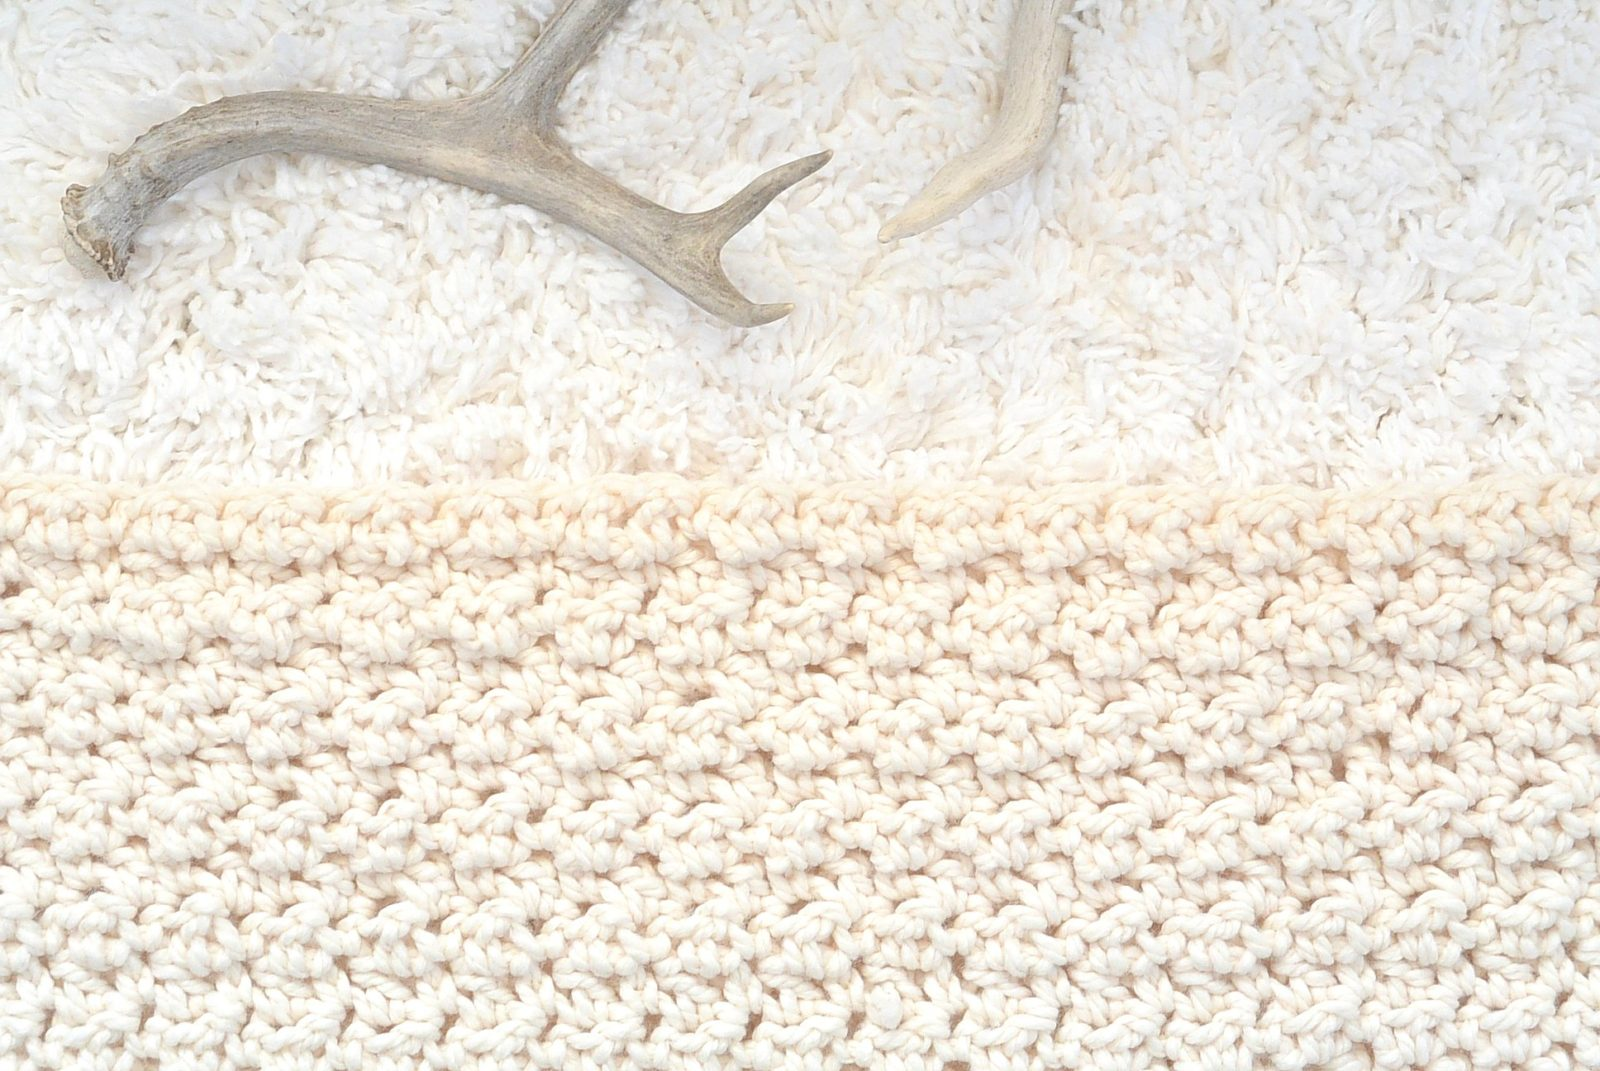 Crochet Stitches Chunky : Chunky Icelandic Crochet Blanket Pattern - Mama In A Stitch